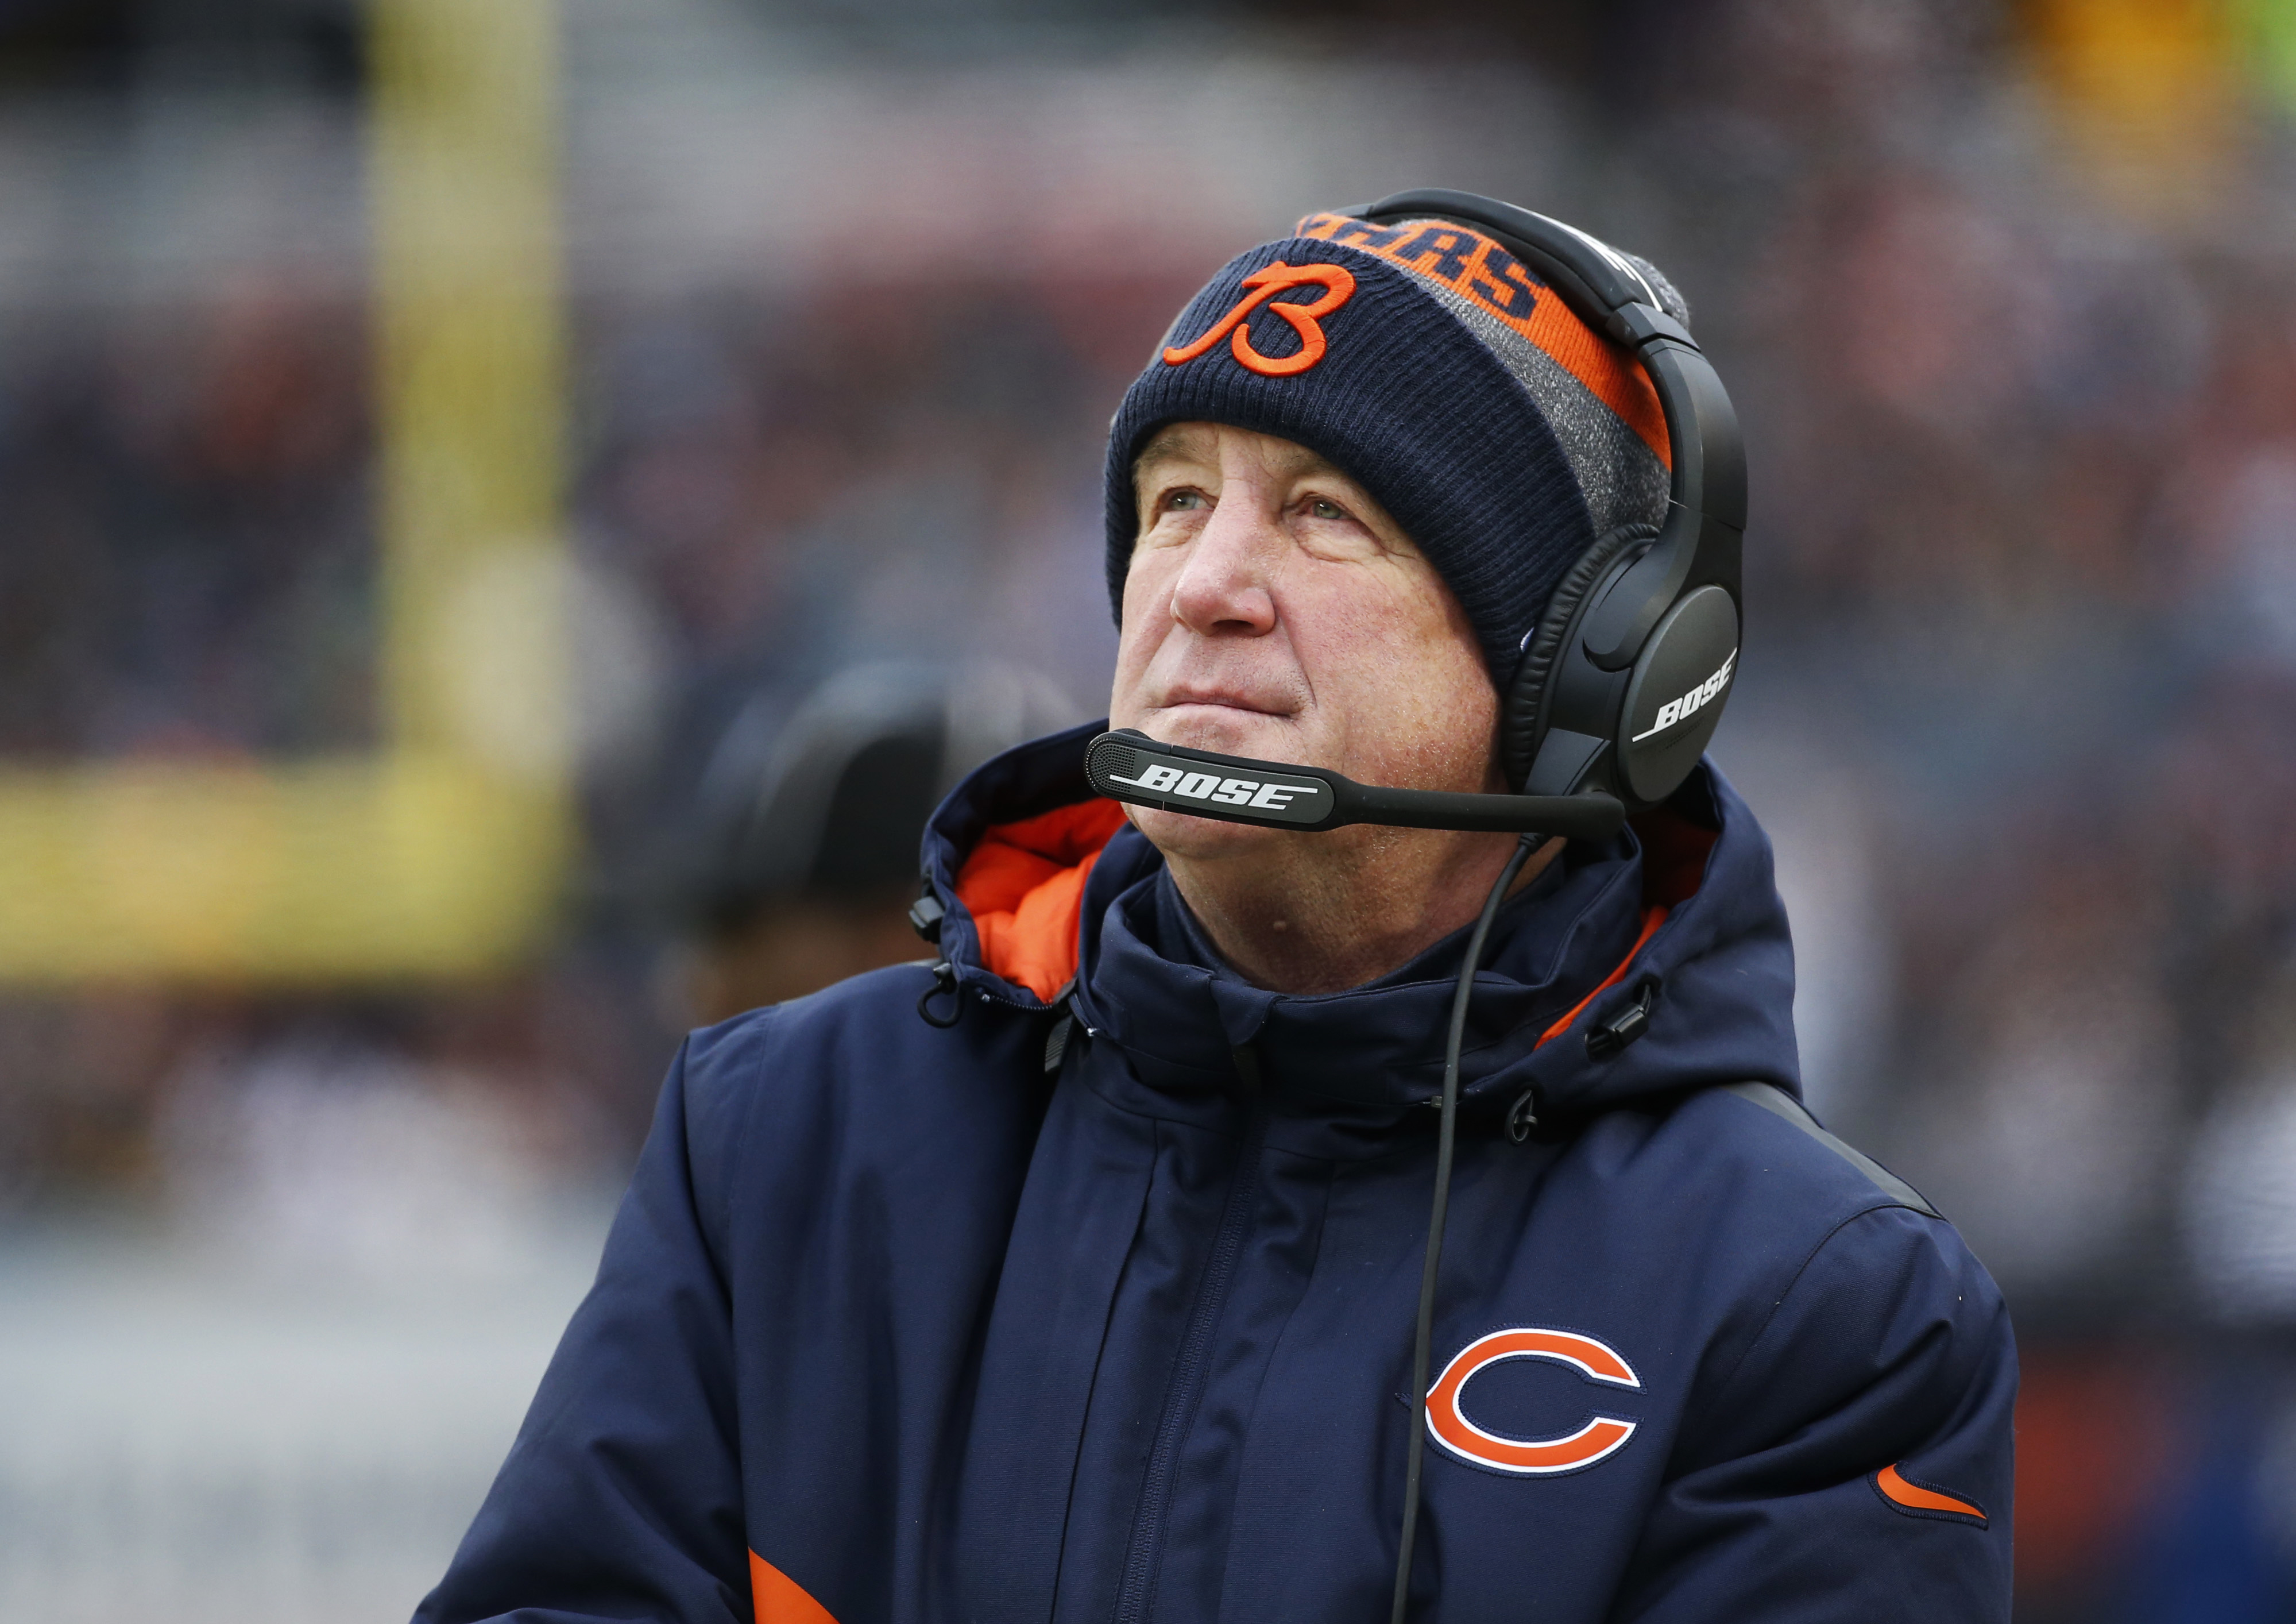 Chicago Bears head coach John Fox watches against the Washington Redskins during the first half of an NFL football game, Saturday, Dec. 24, 2016, in Chicago. (AP Photo/Nam Y. Huh)